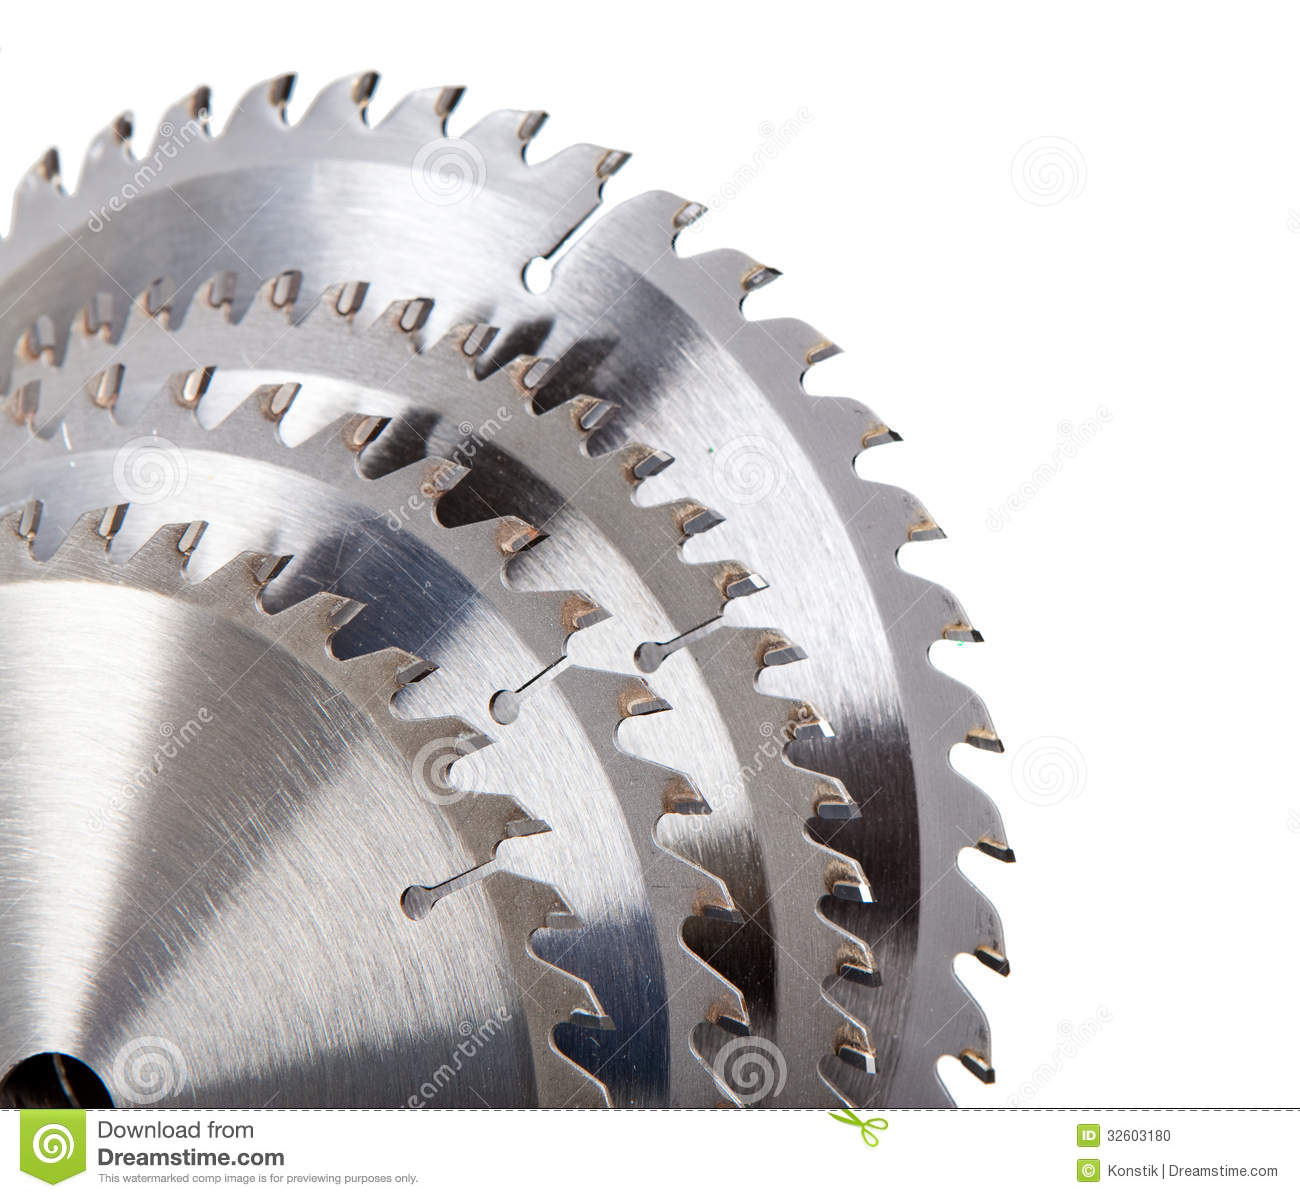 Circular saw blade for wood with hard alloy insertions on a white background